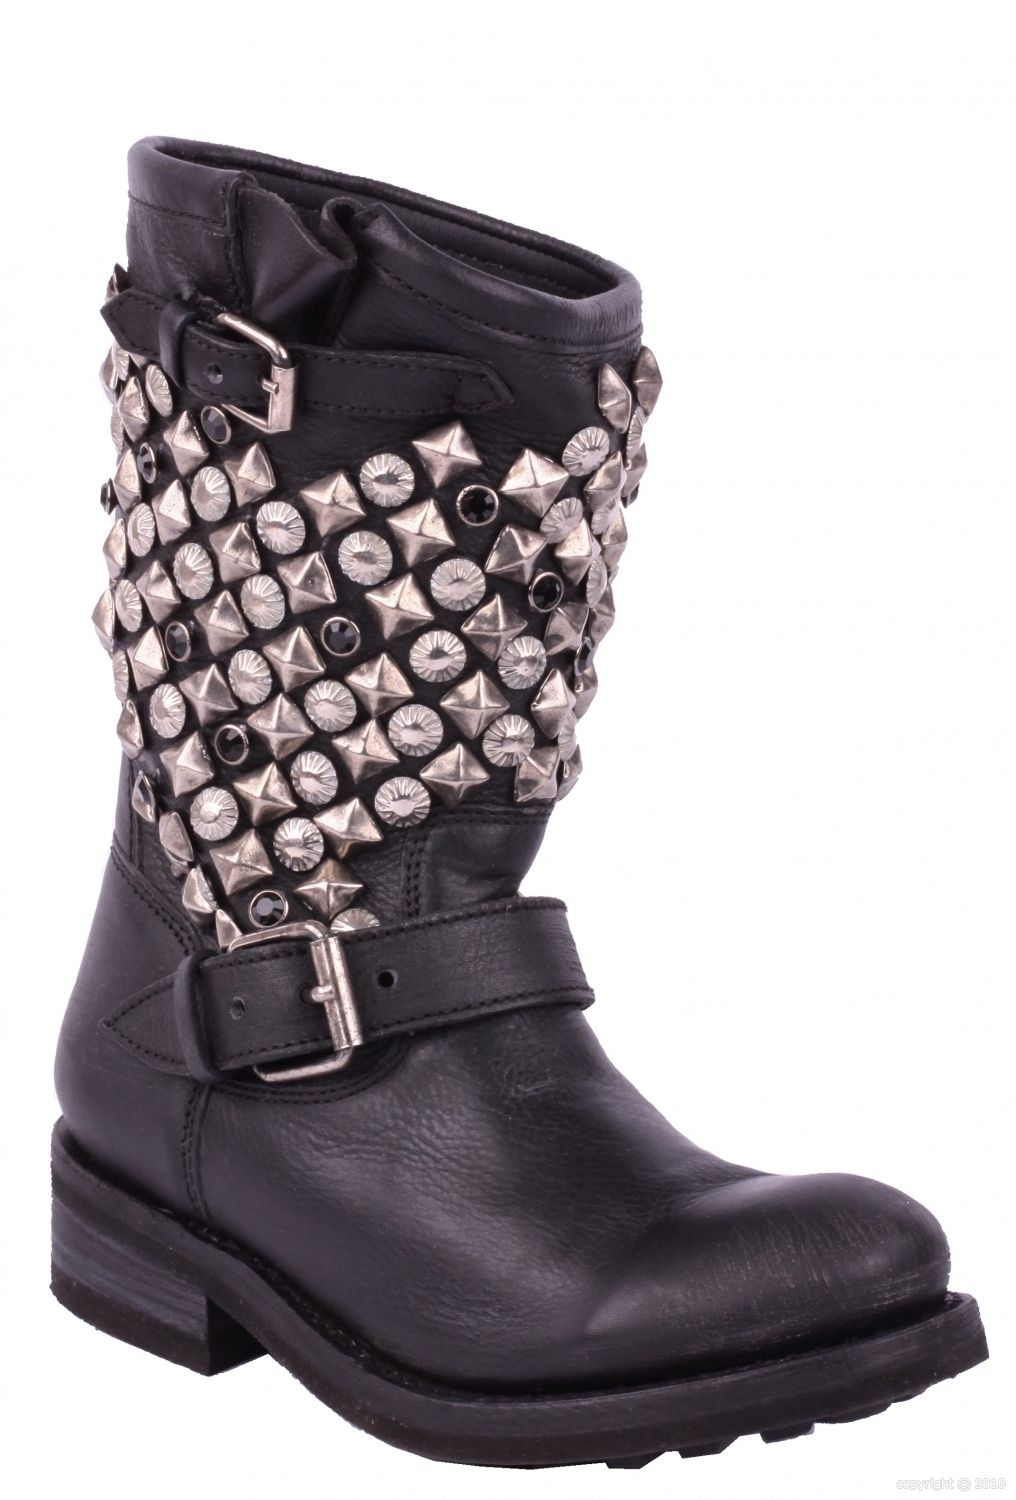 Soon Ash Cuir En The Boots Mine Tokyo For lt;3 Cloutées Biker 1w1grtq0